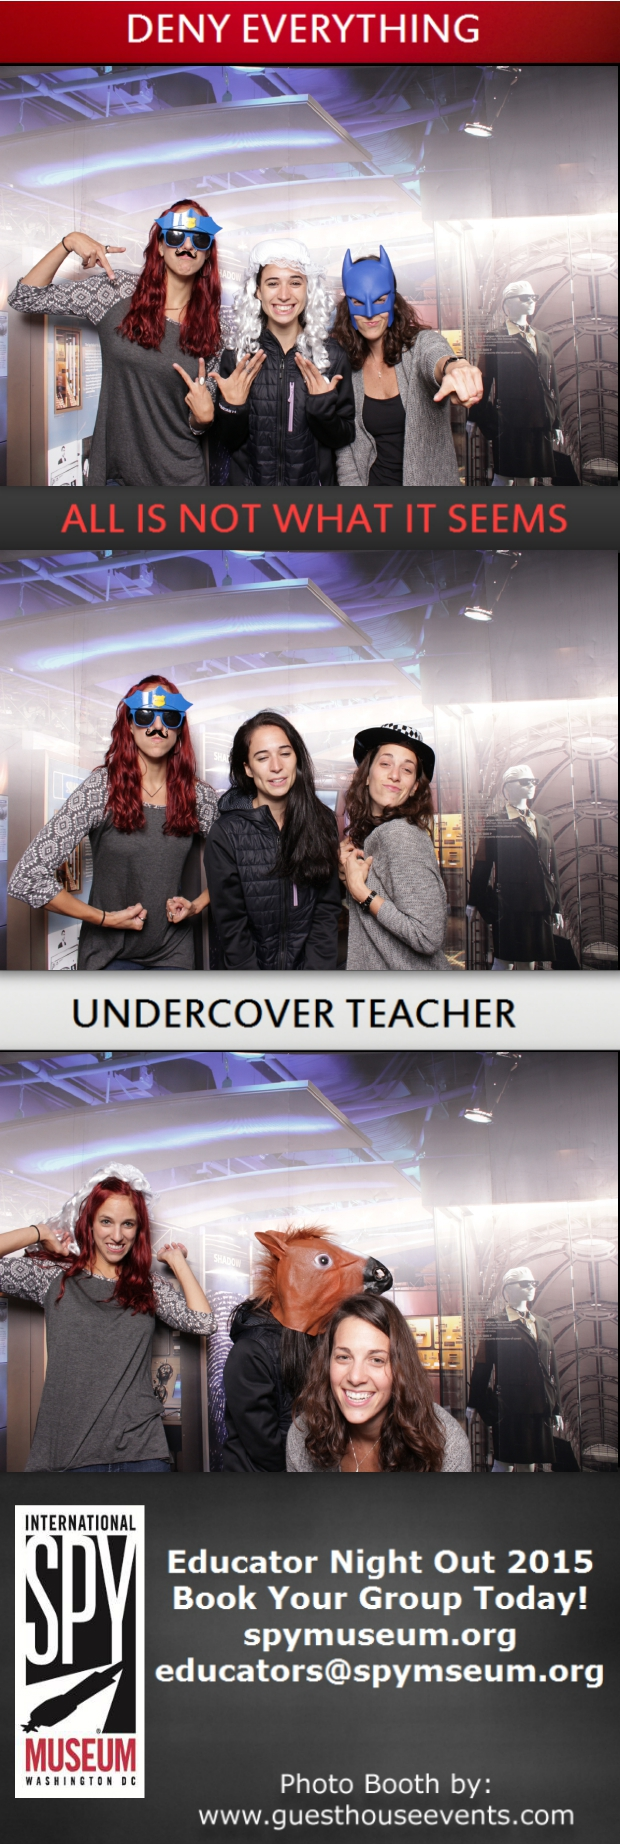 Guest House Events Photo Booth Spy Museum Educator Night Out (8).jpg